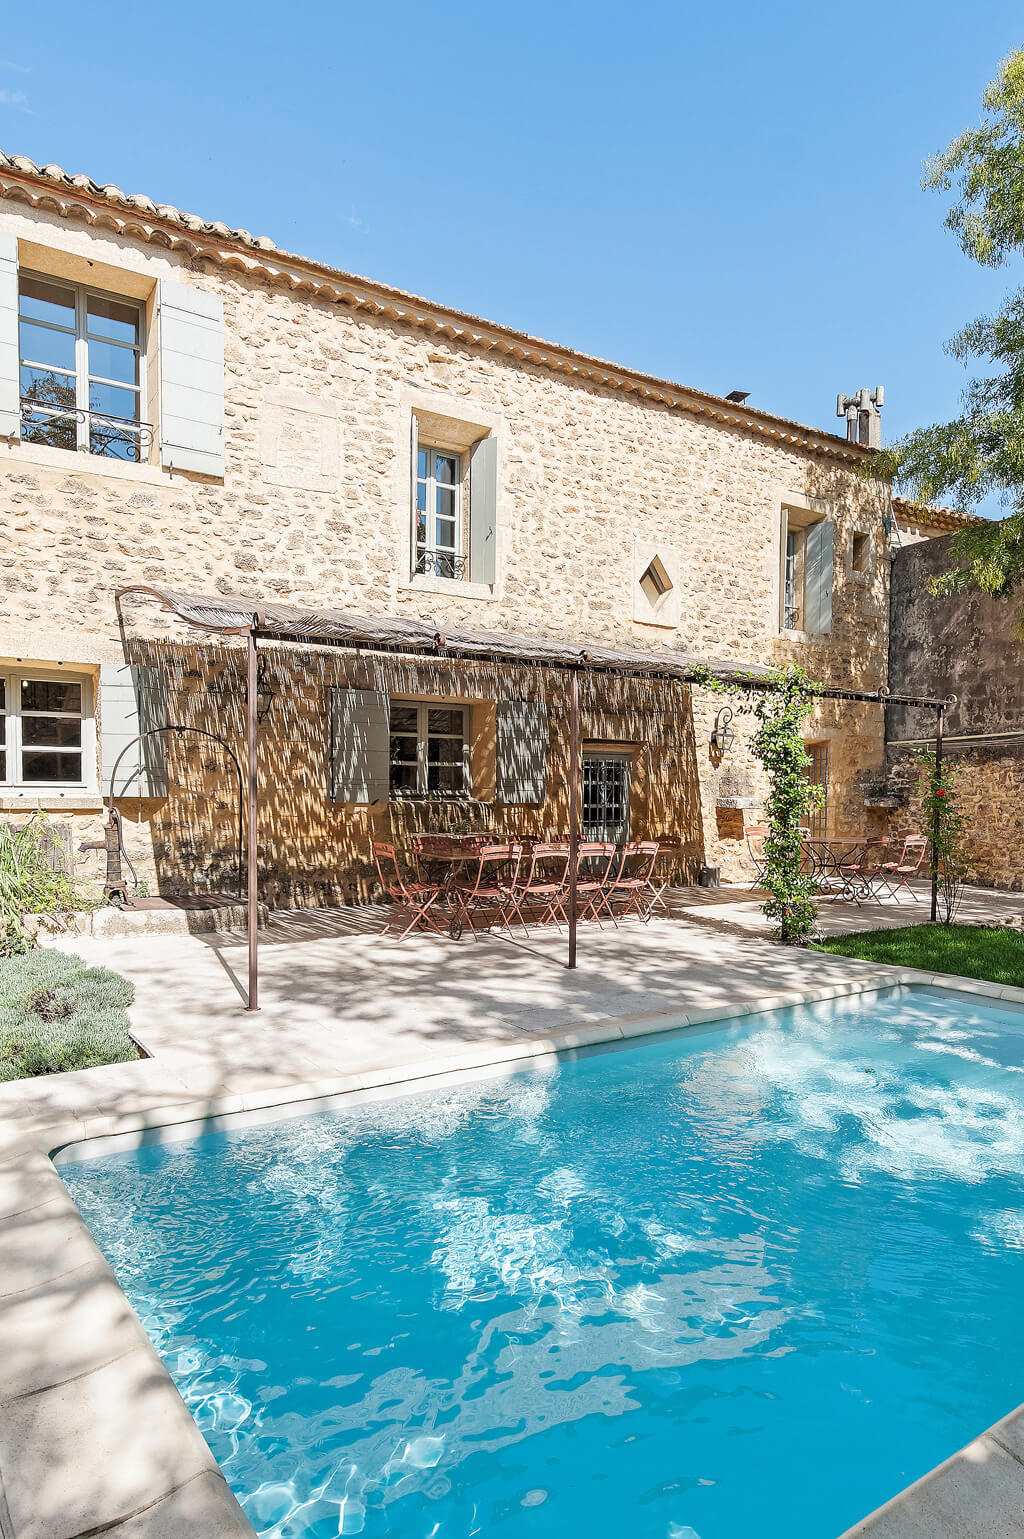 Provence farmhouse pool and outdoor dining in a charming setting.